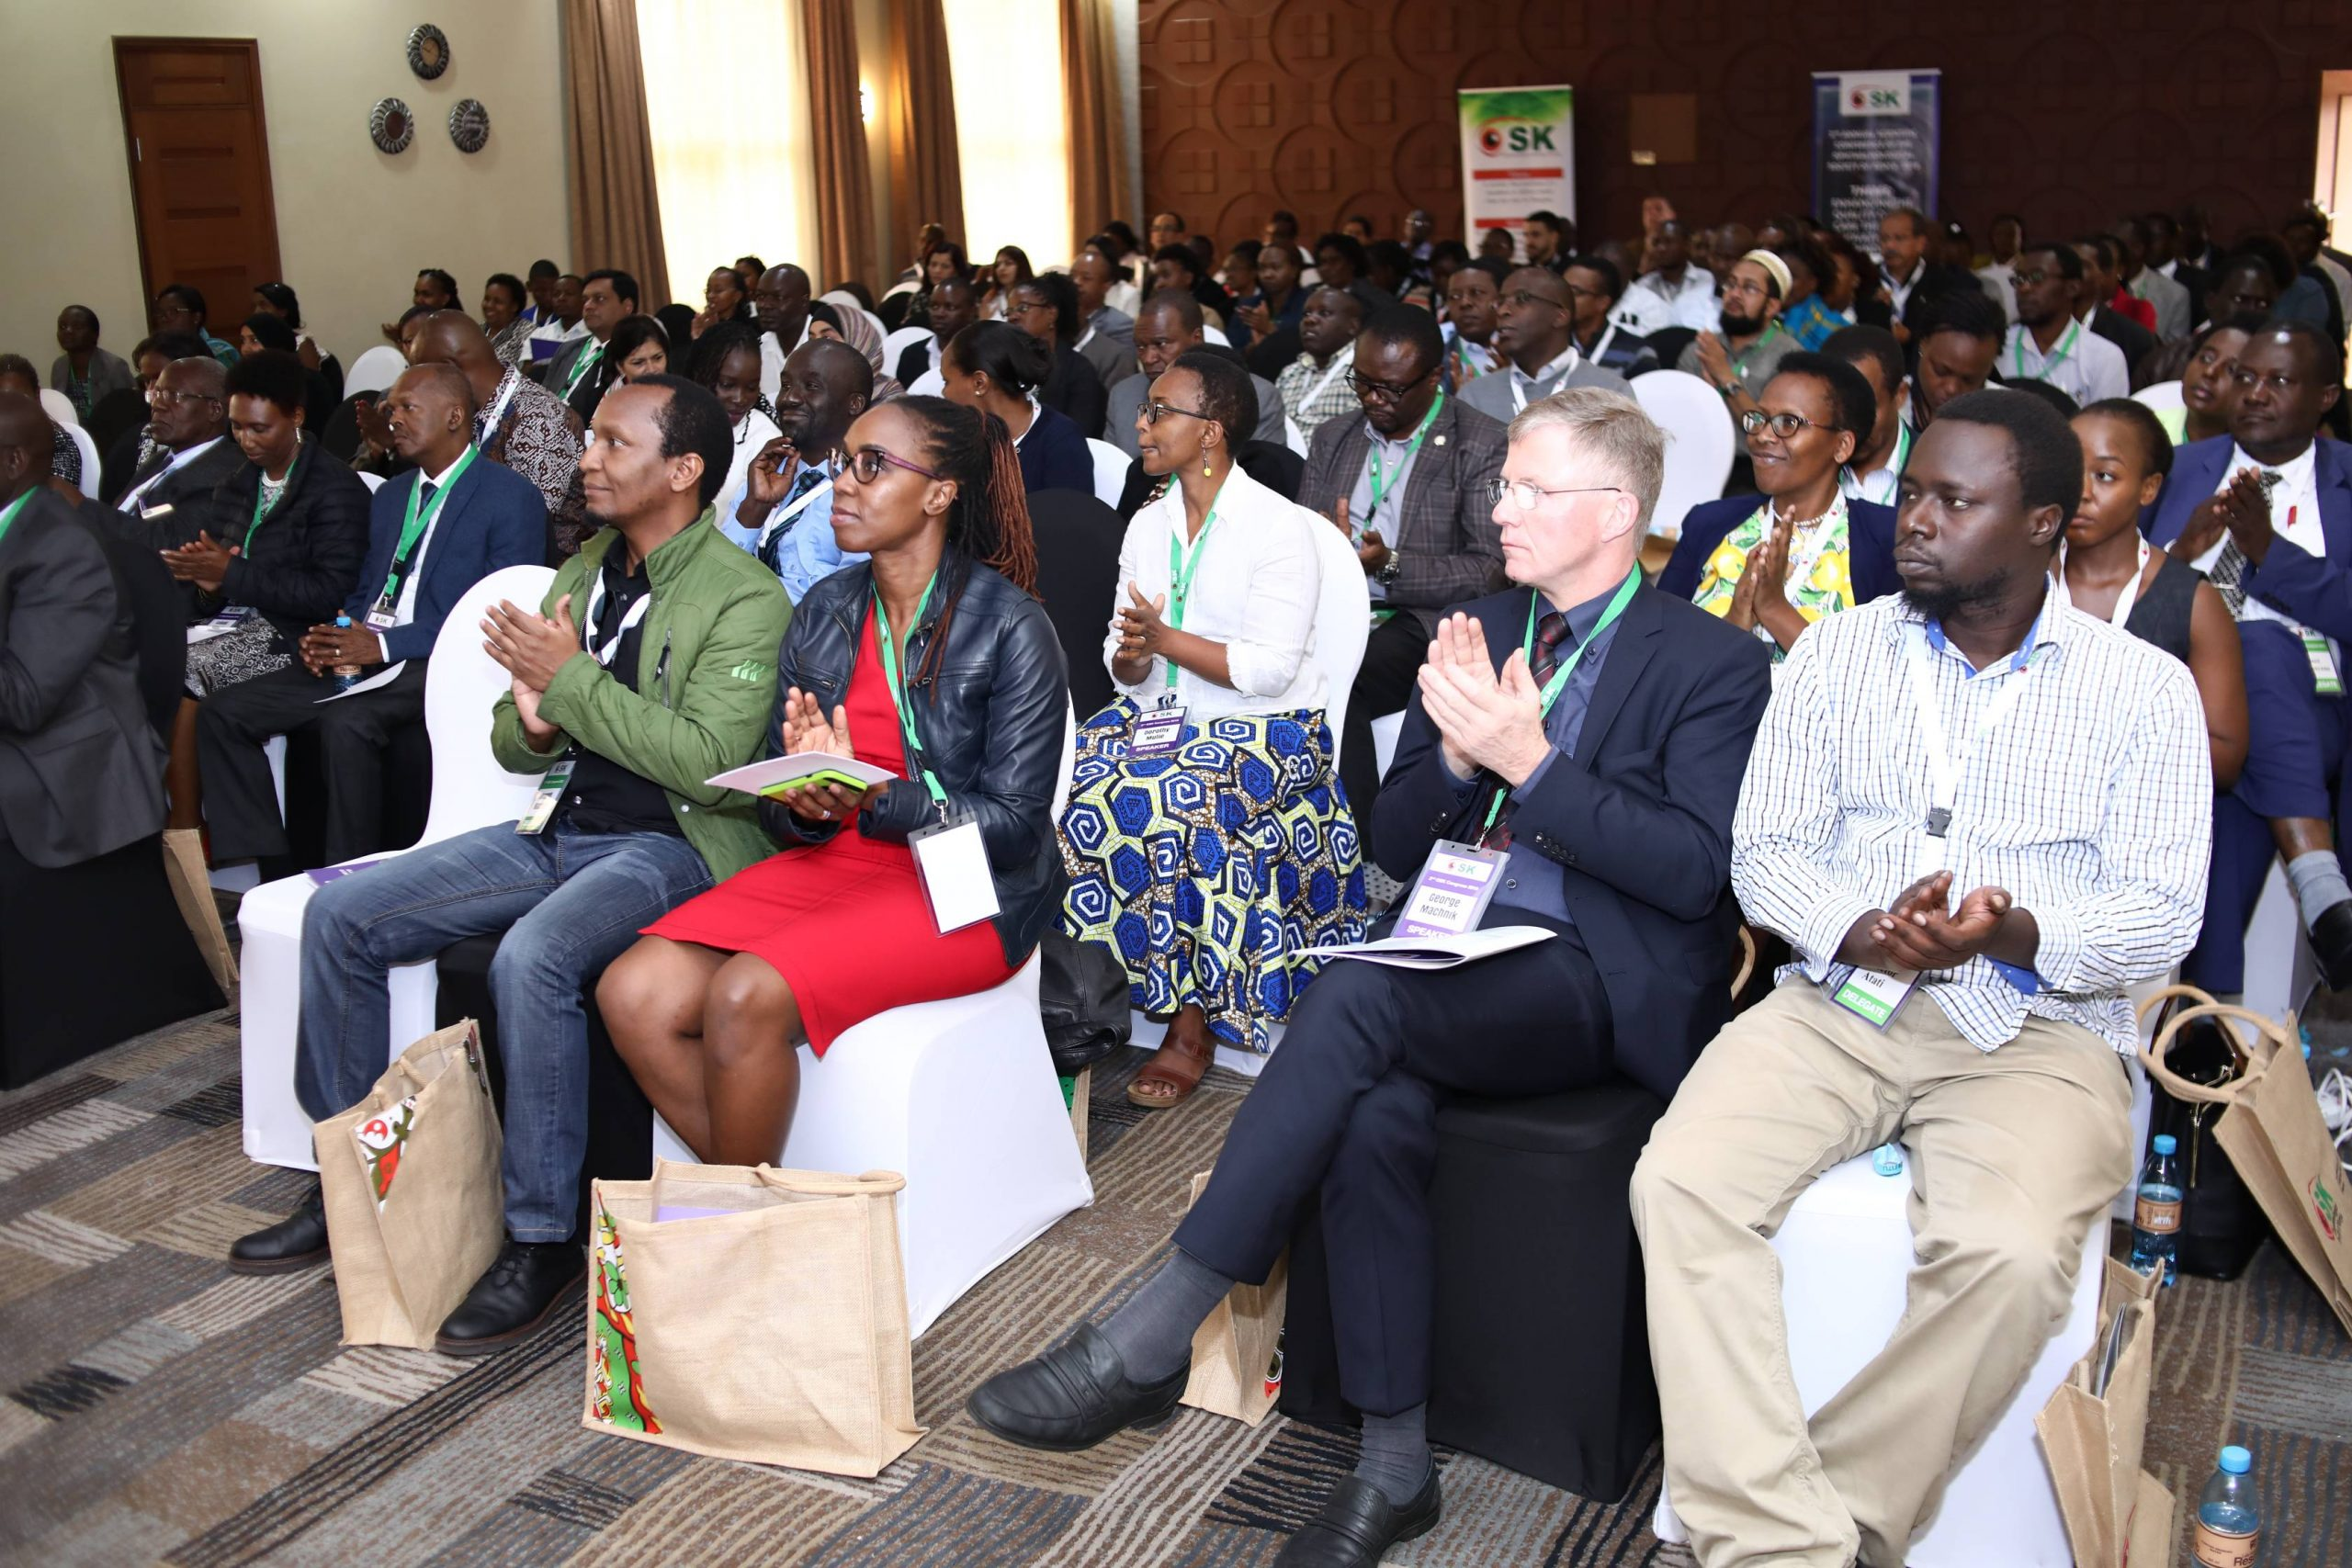 The Ophthalmological Society of Kenya